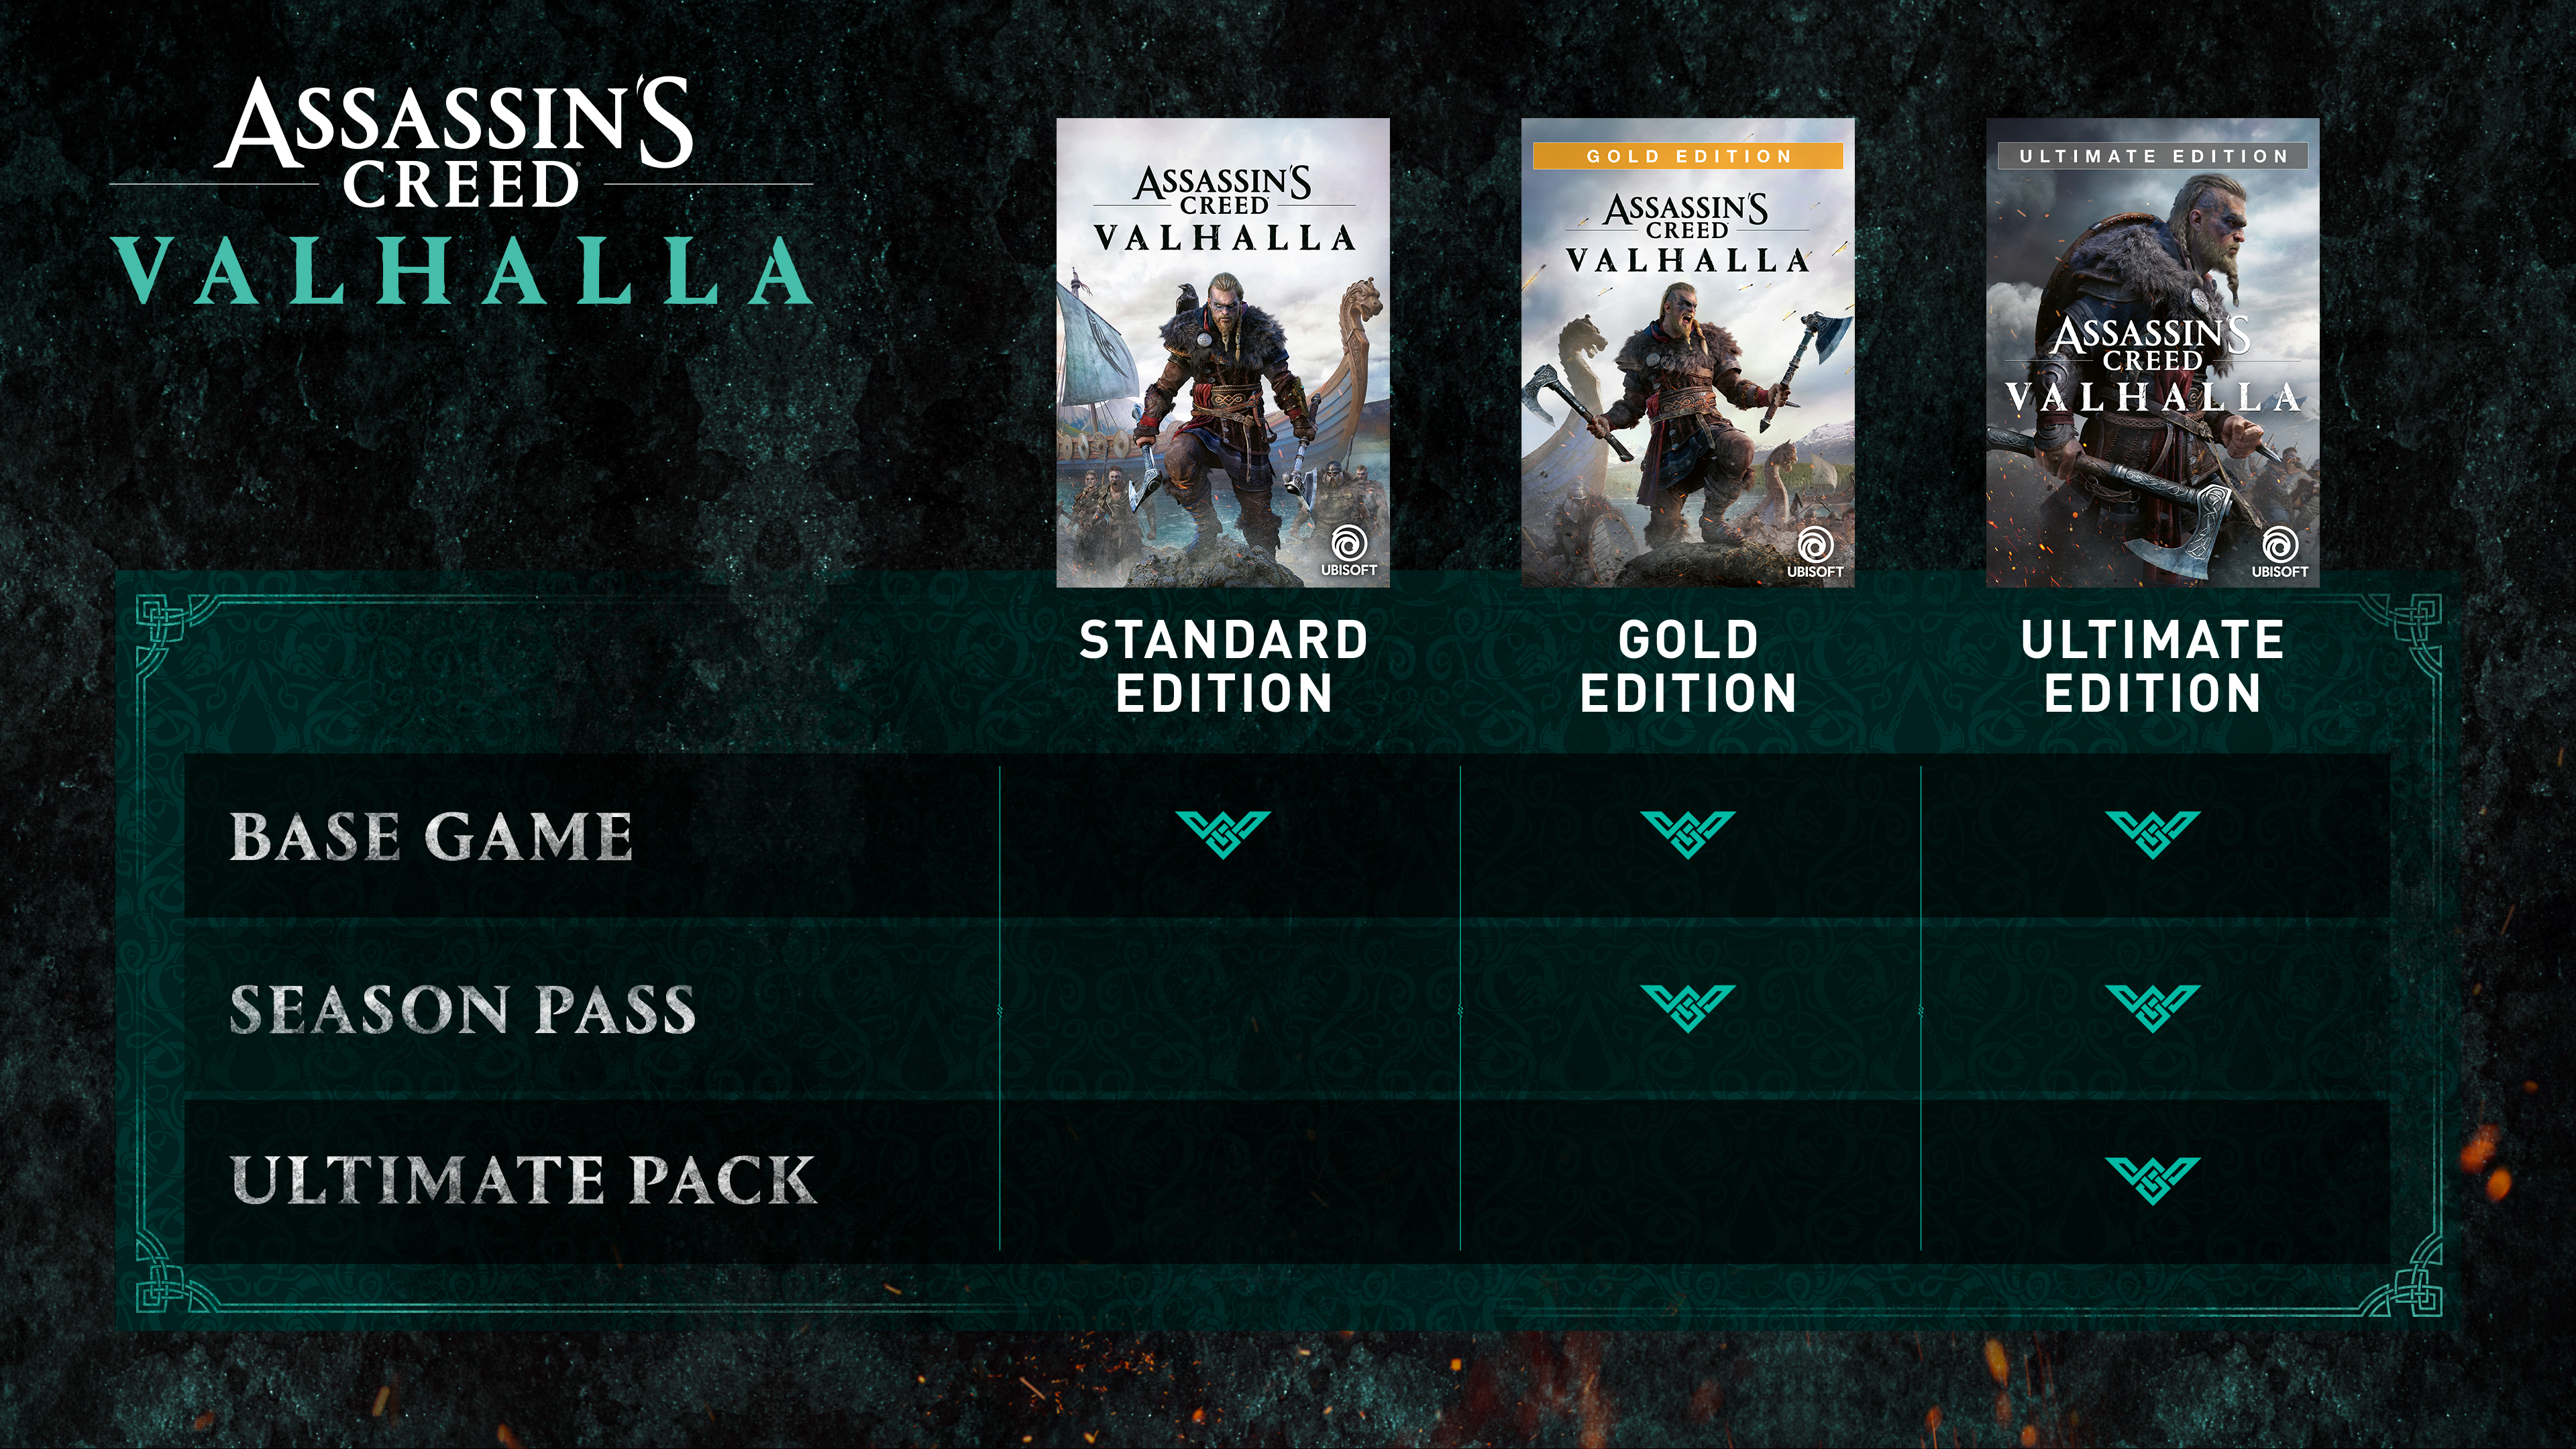 Assassin's Creed Valhalla Will Support Smart Delivery on Xbox Series X